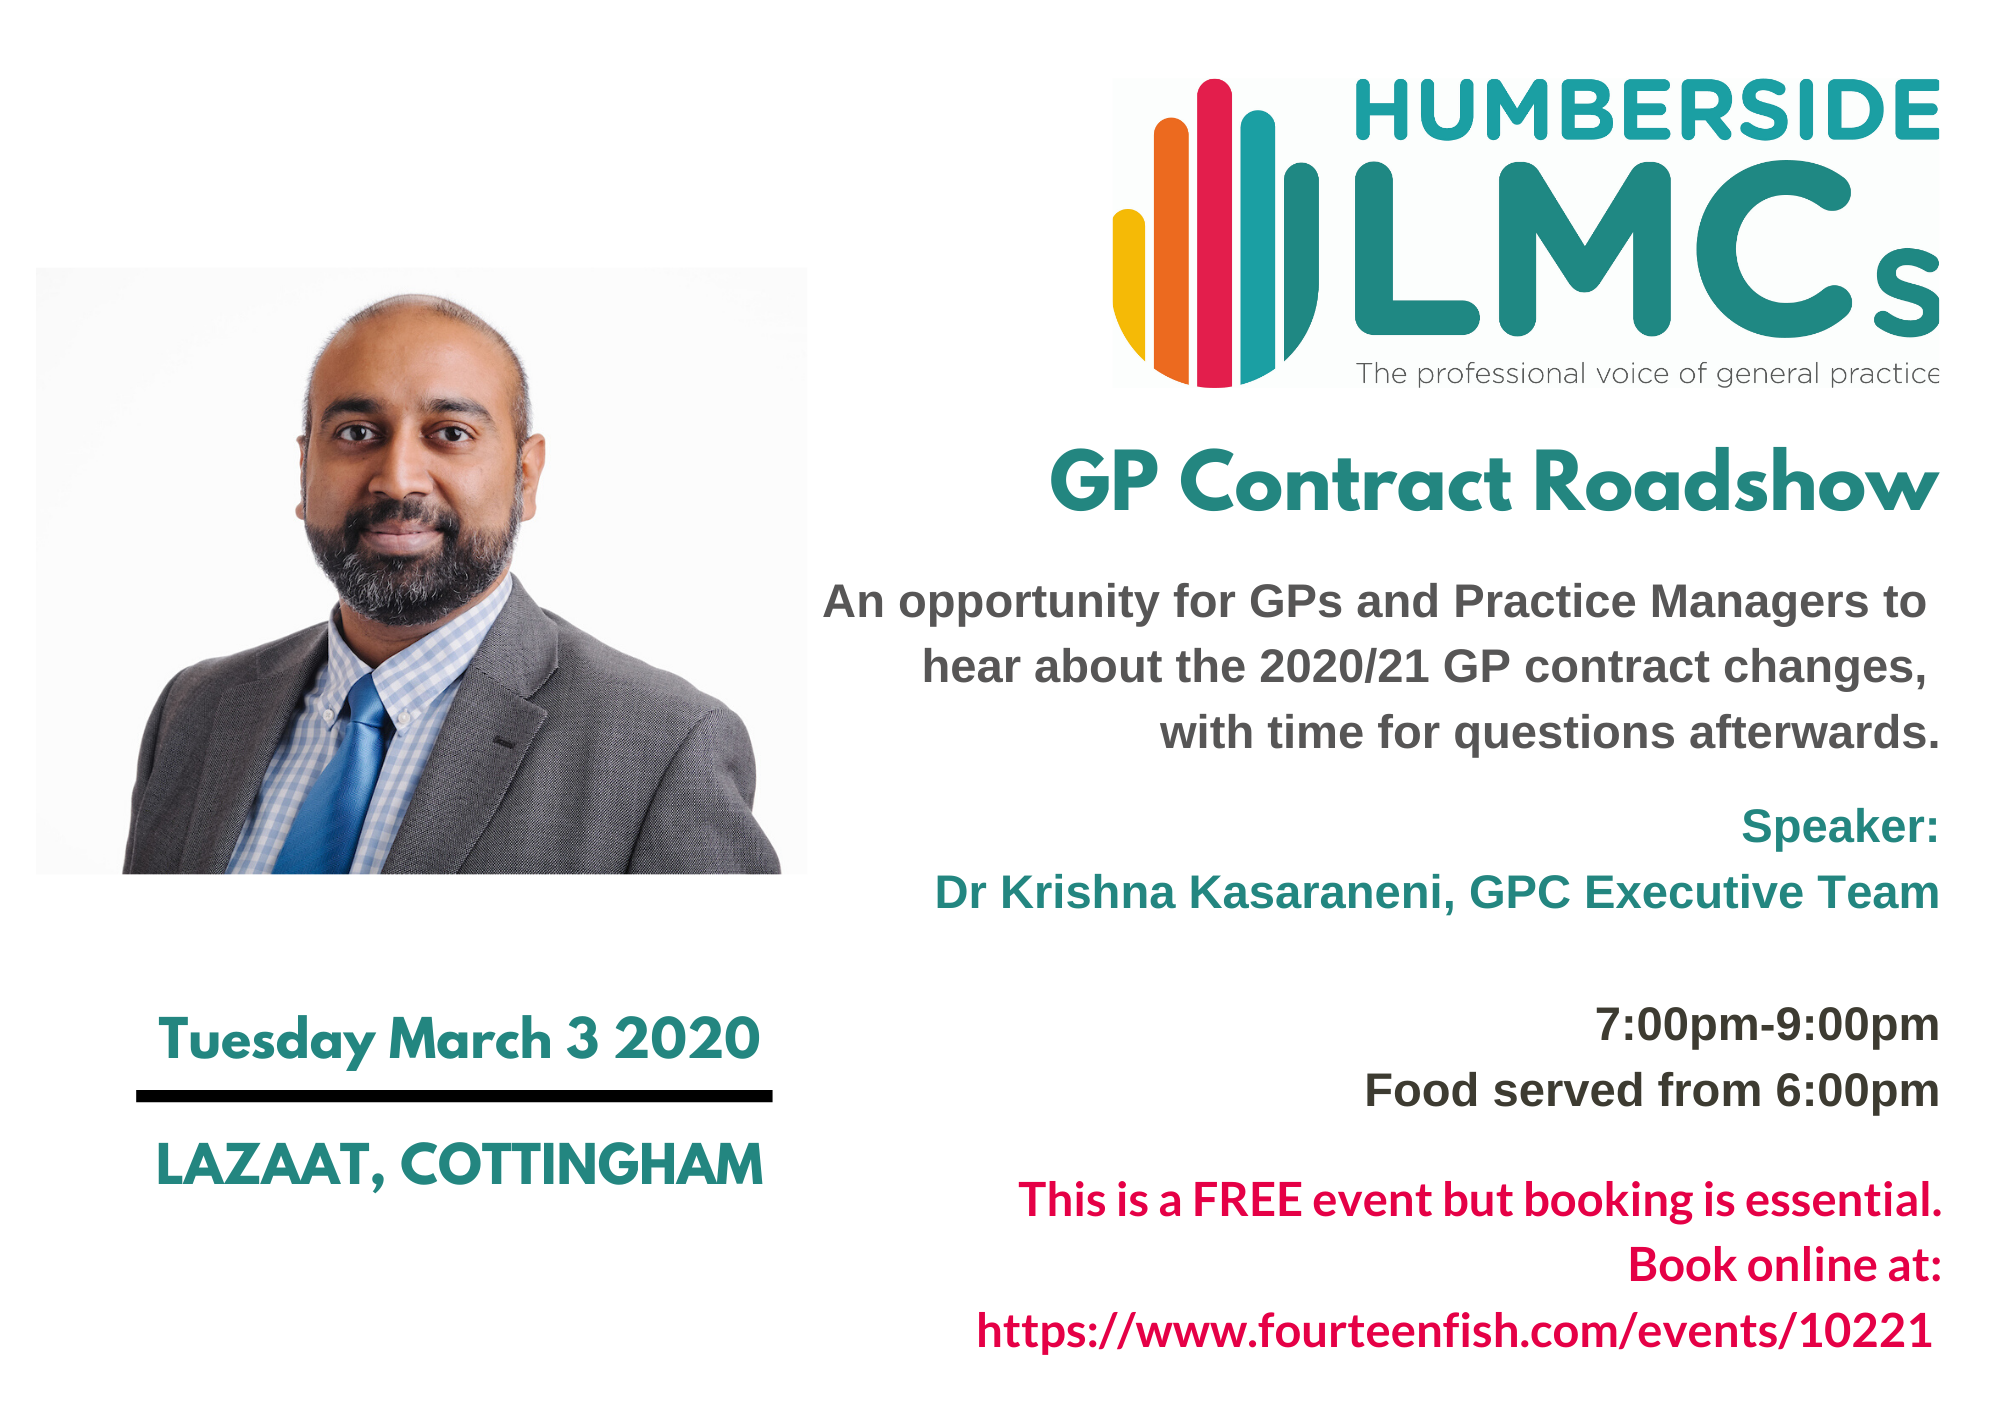 GPC Contract Roadshow 03/03/20